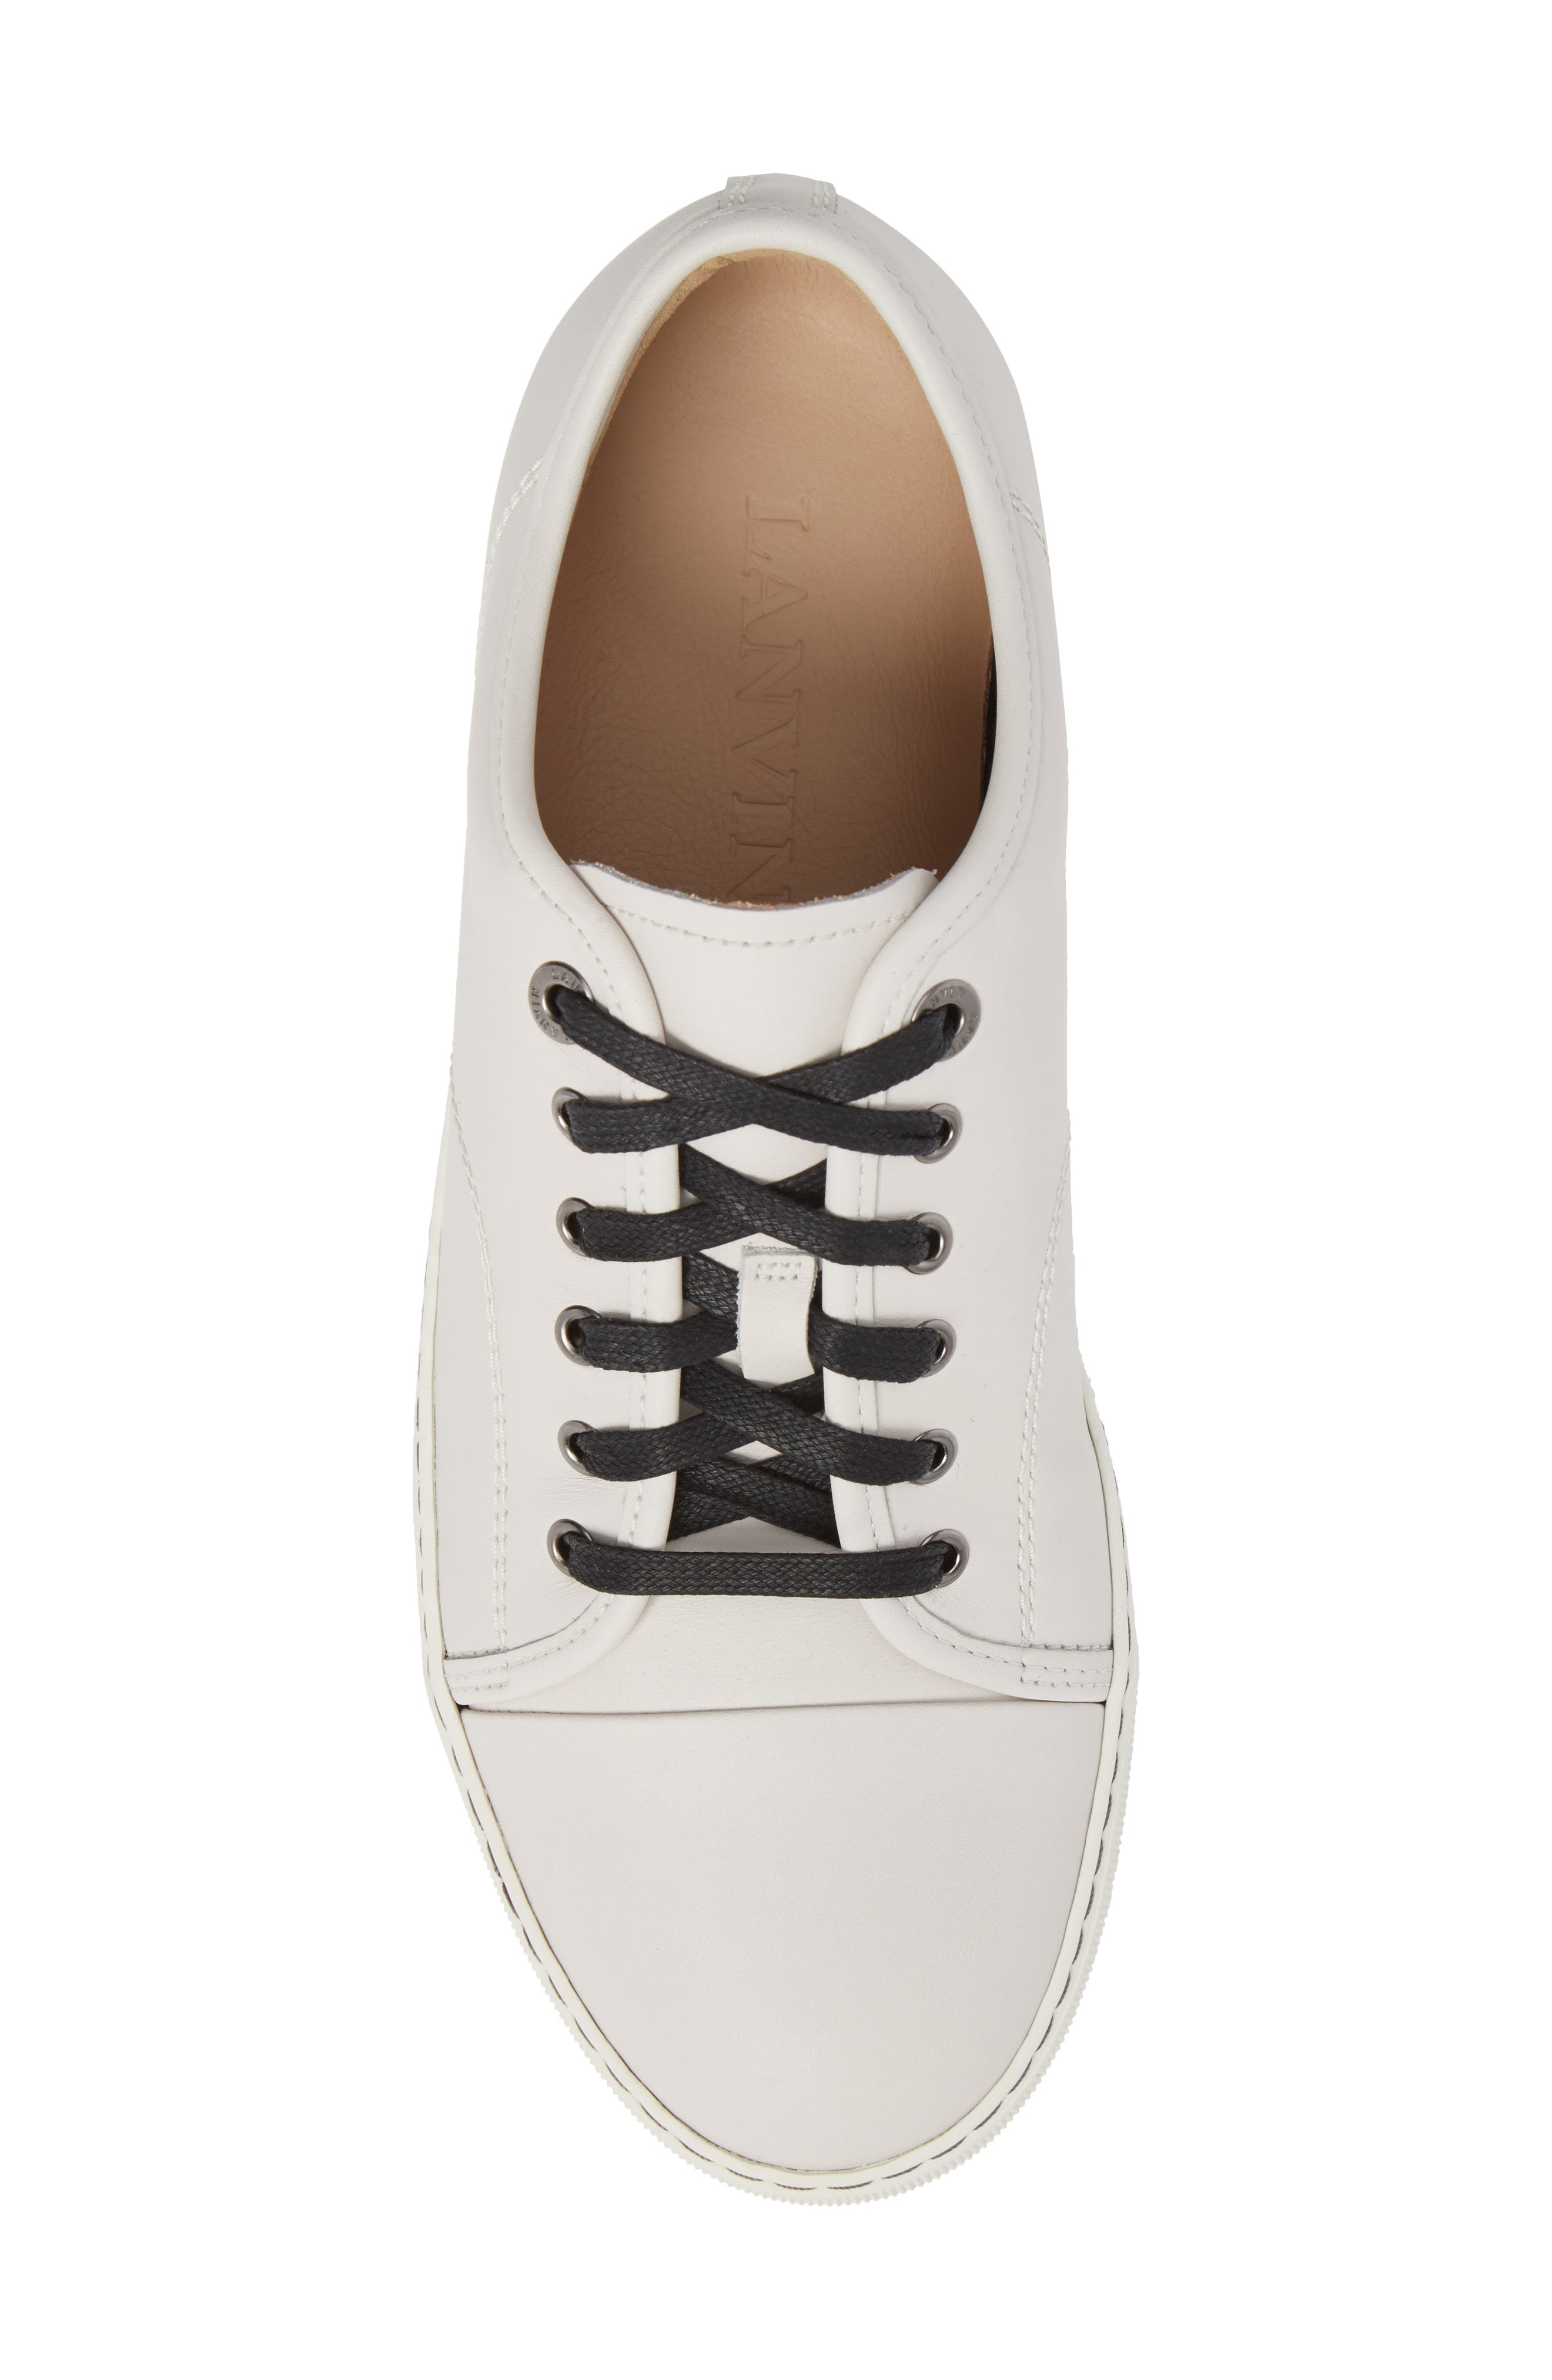 LANVIN,                             Low Top Sneaker,                             Alternate thumbnail 5, color,                             102